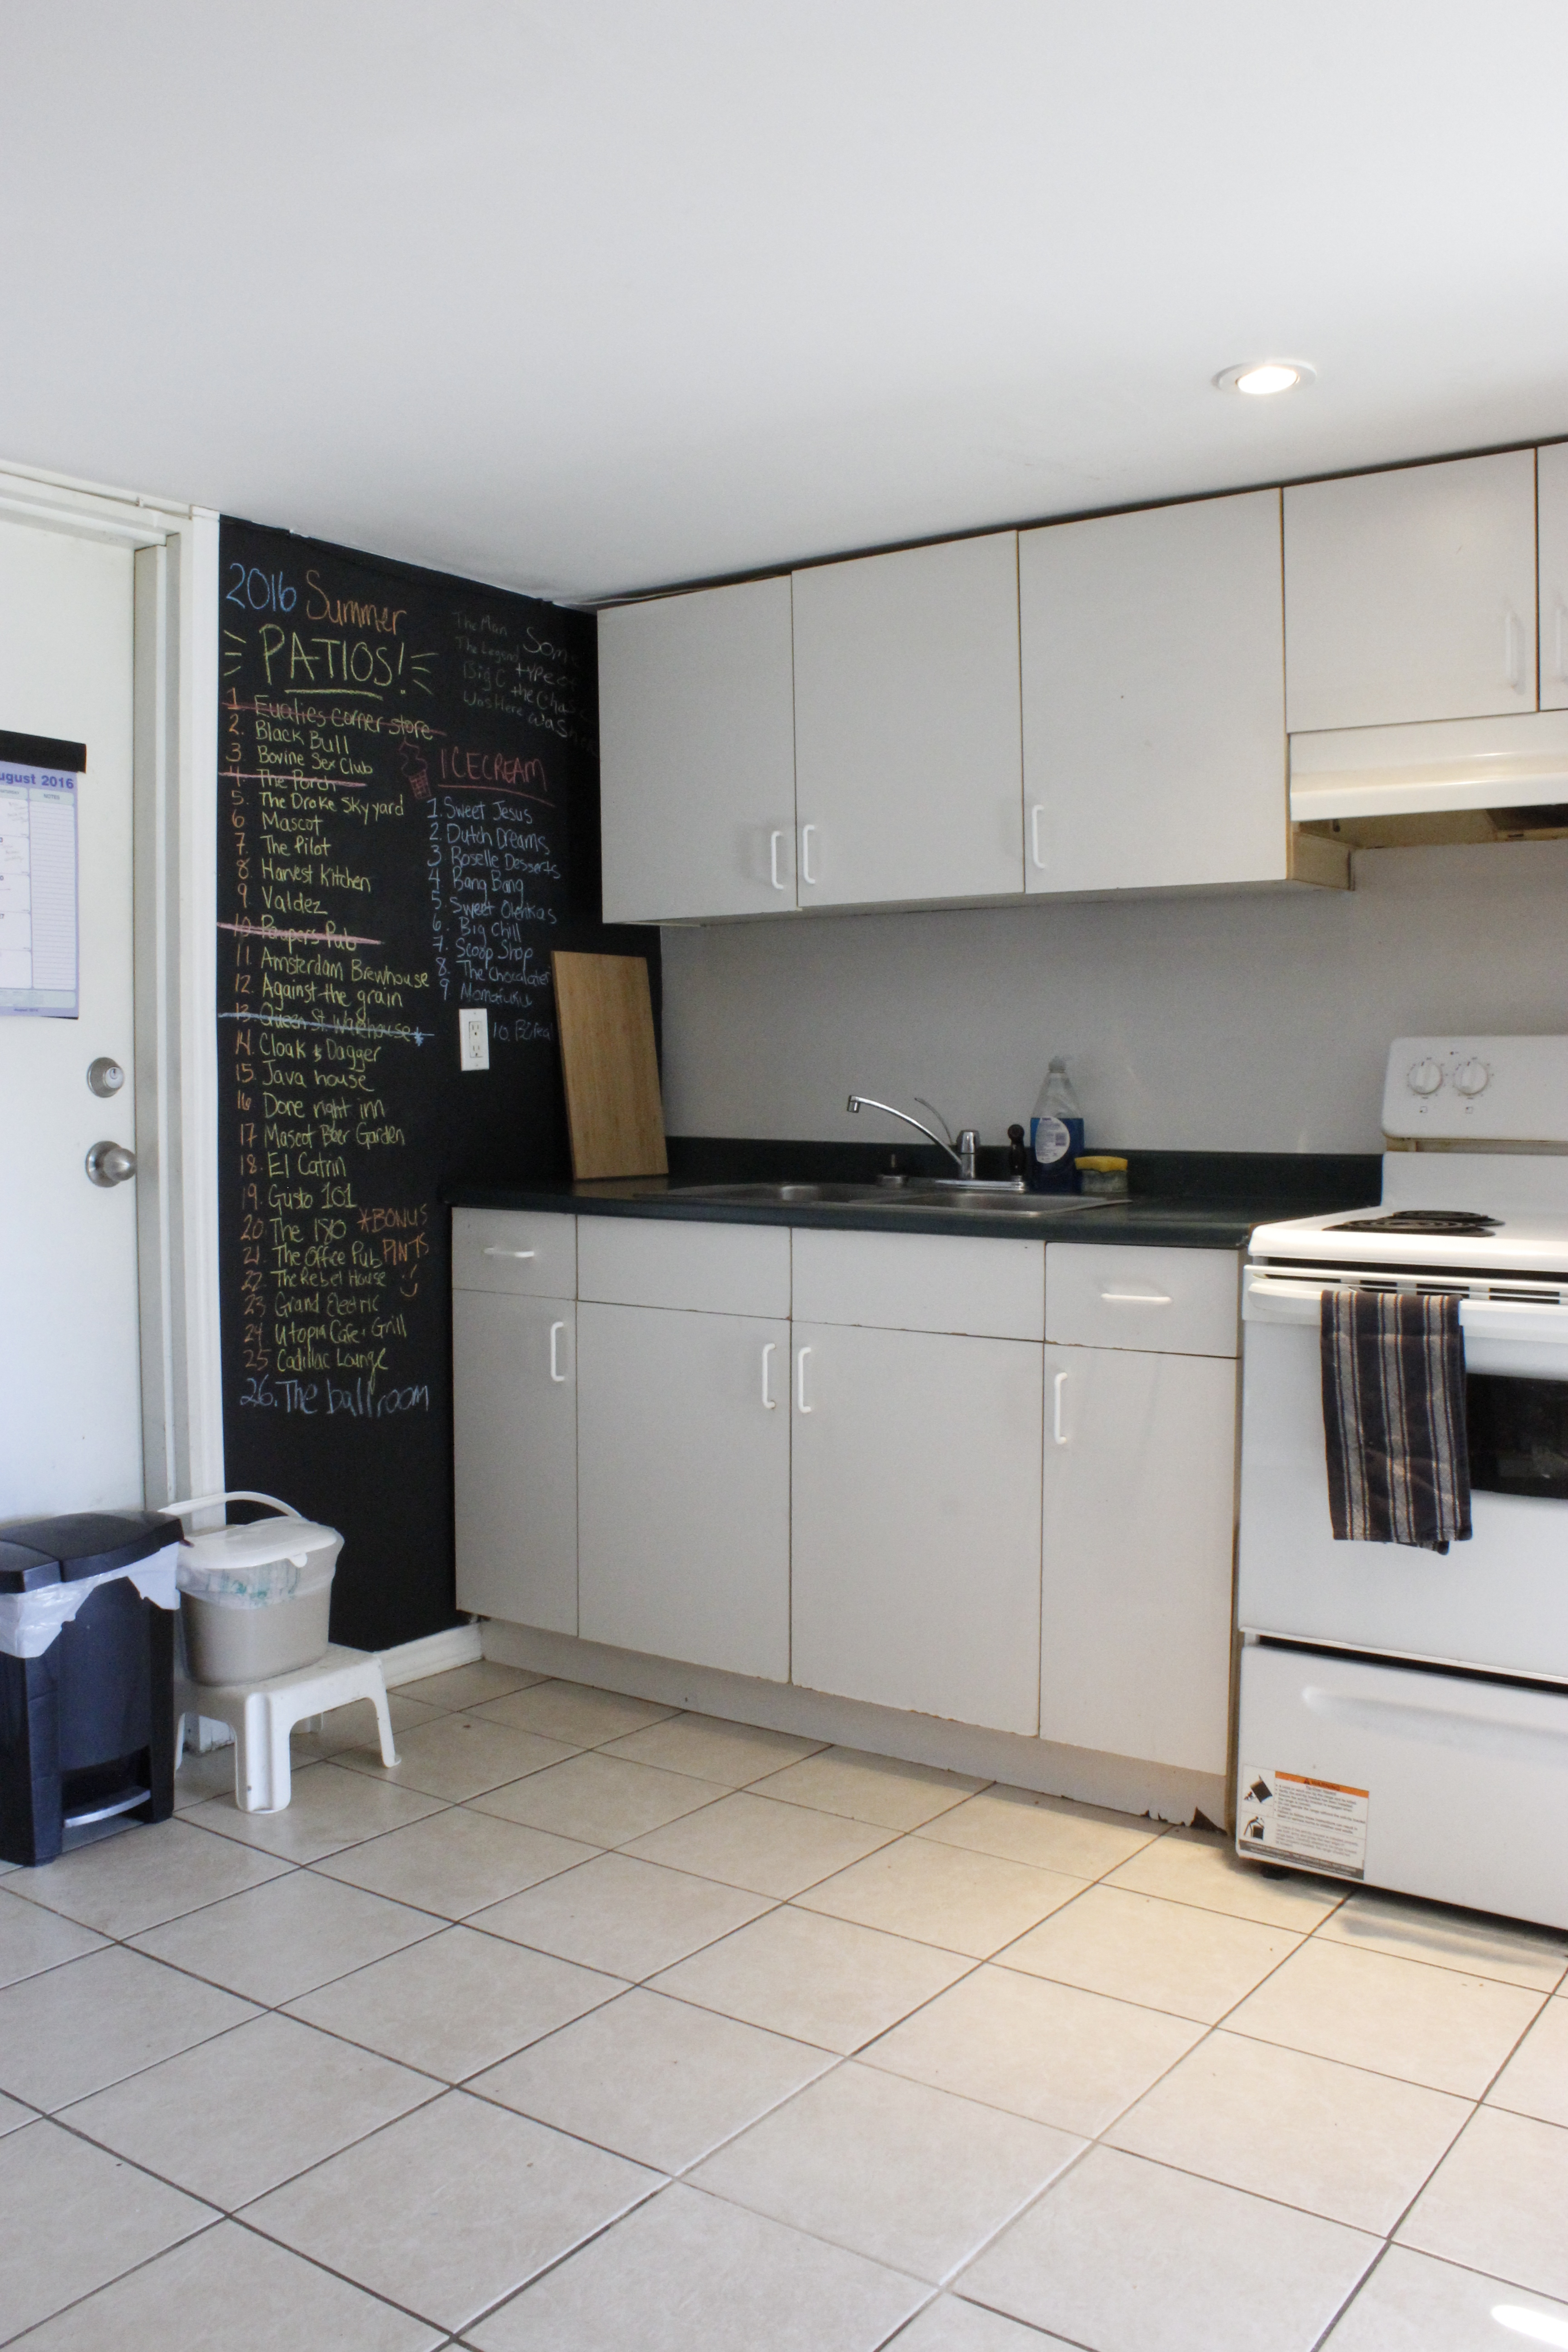 Basement Apartment Before And After.  mg 5015 Basement Apartment Diaries DIY Kitchen The Before Autumn Hachey